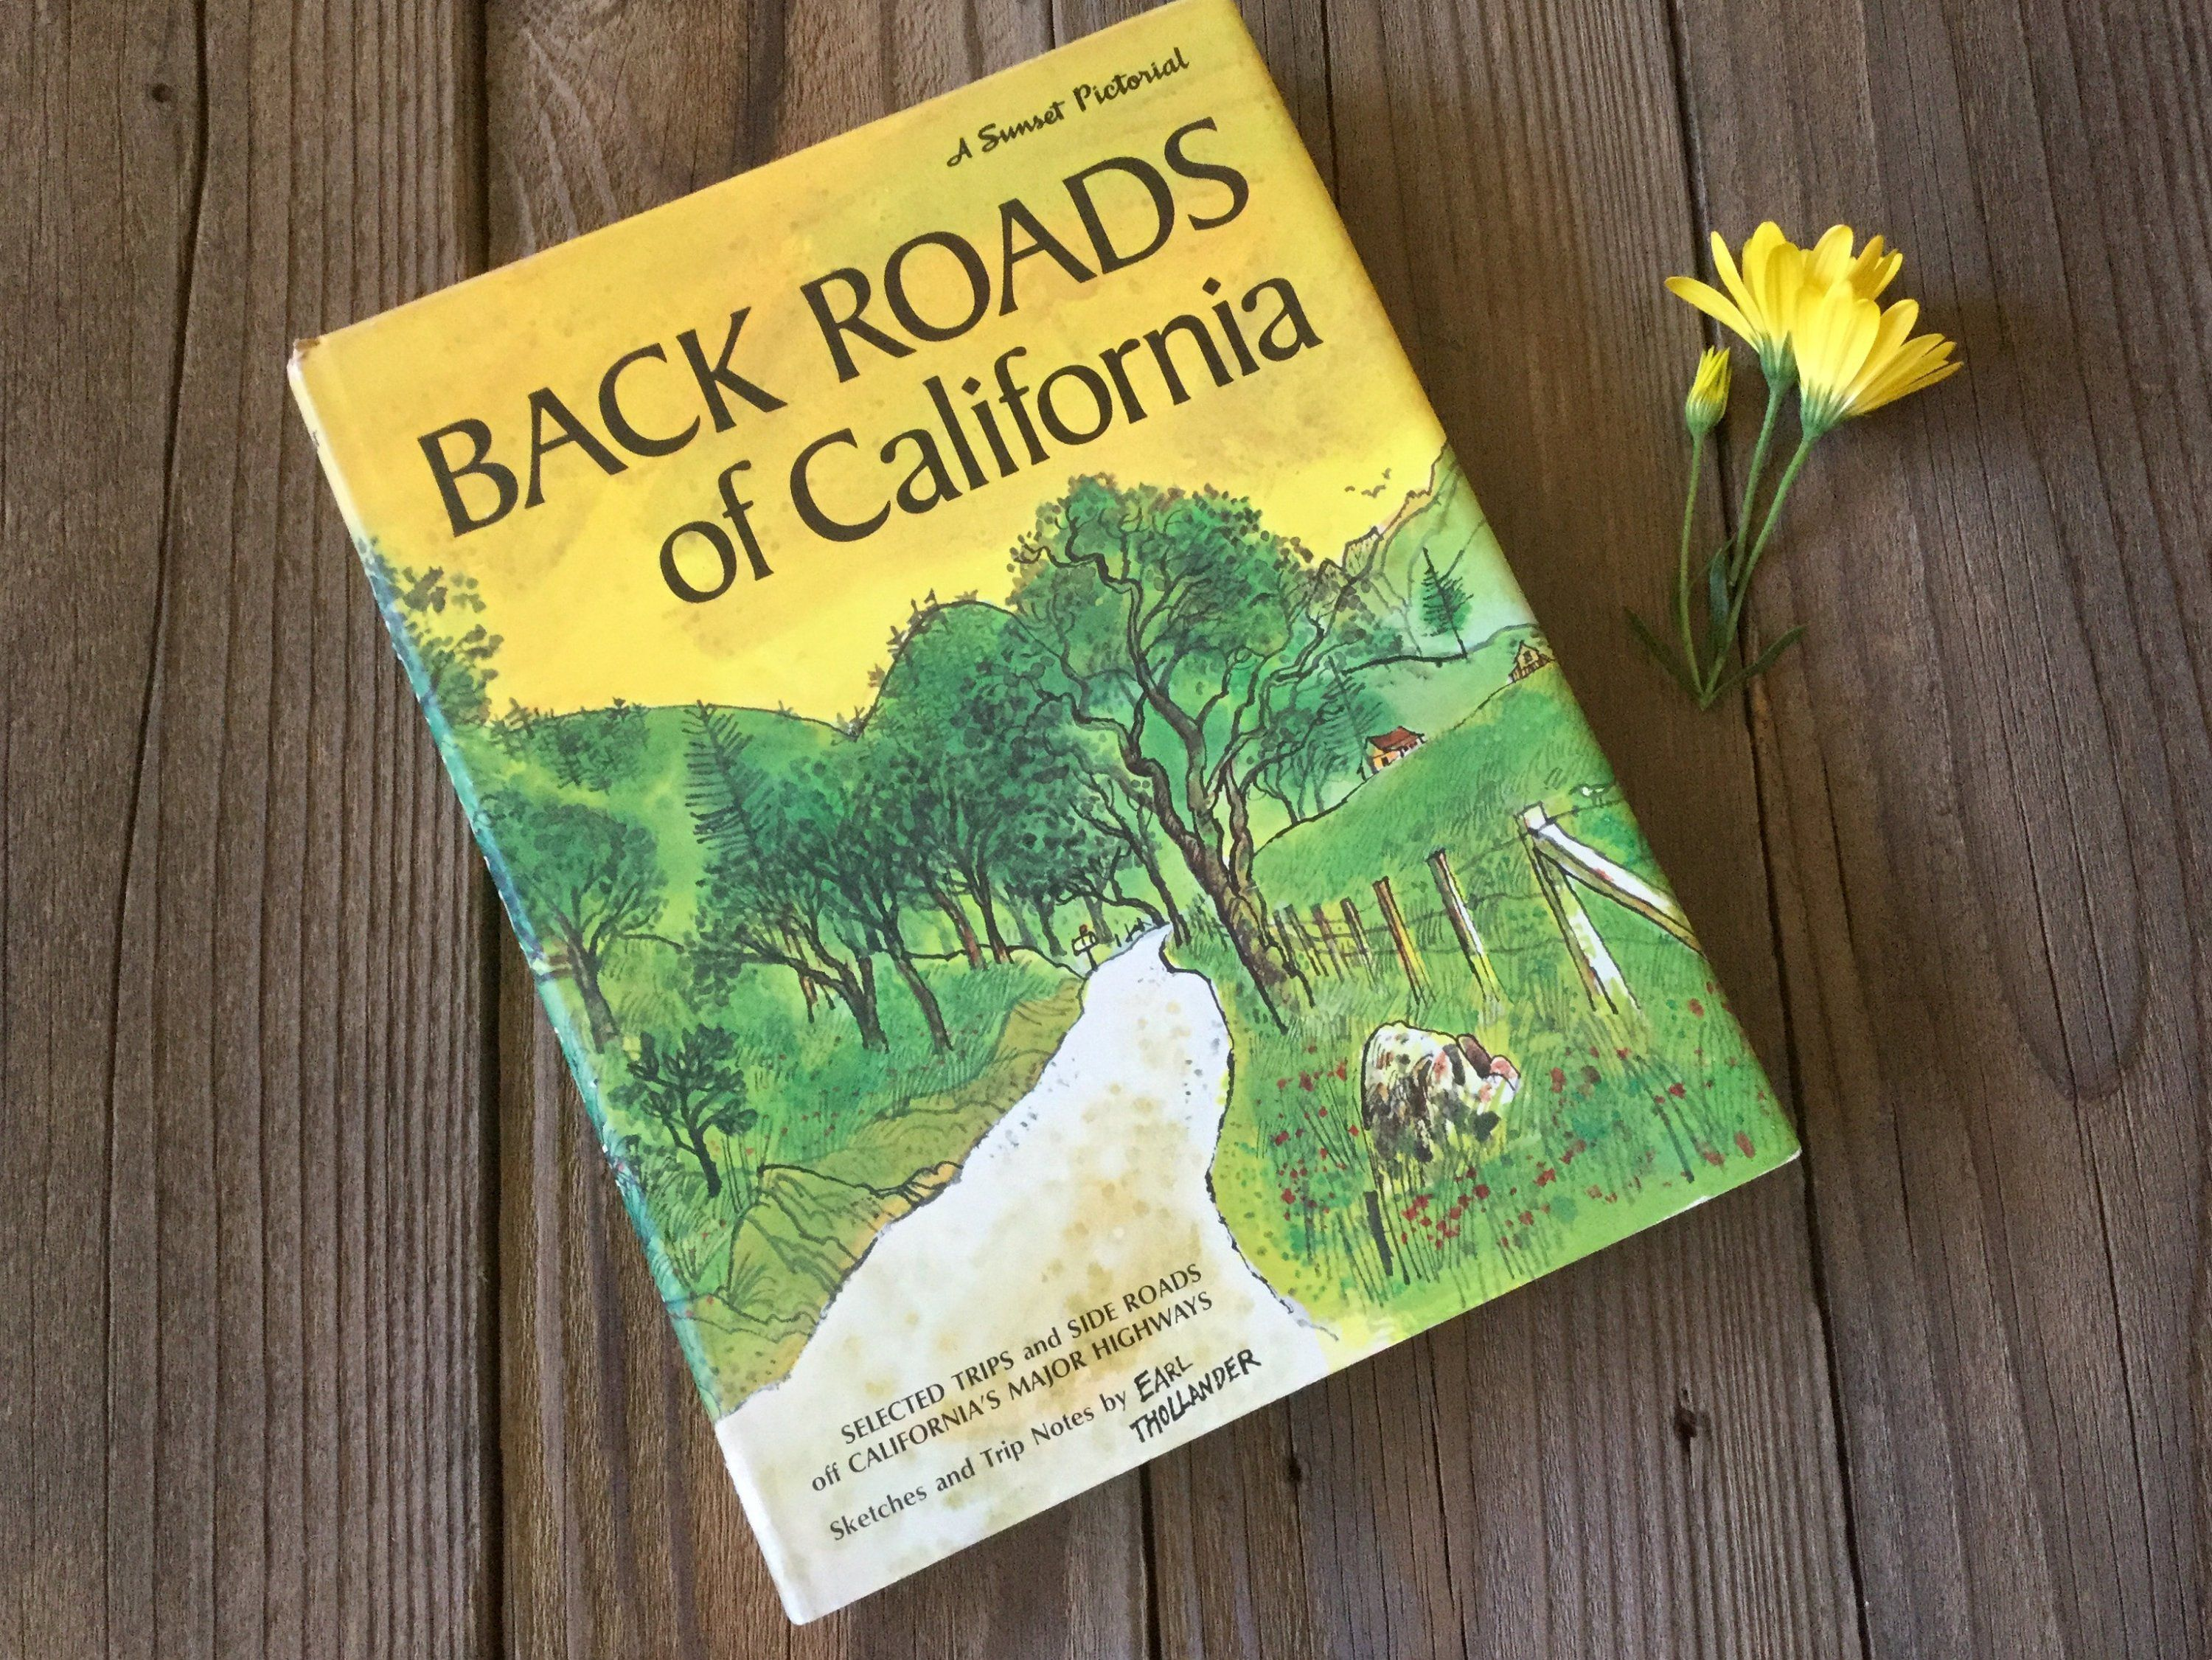 Travel Book 1970s Backroads Of California A Sunset Pictorial First Printing Hardcover Coffee Table Book Vintage Travel Book Backroads Adventure Travel